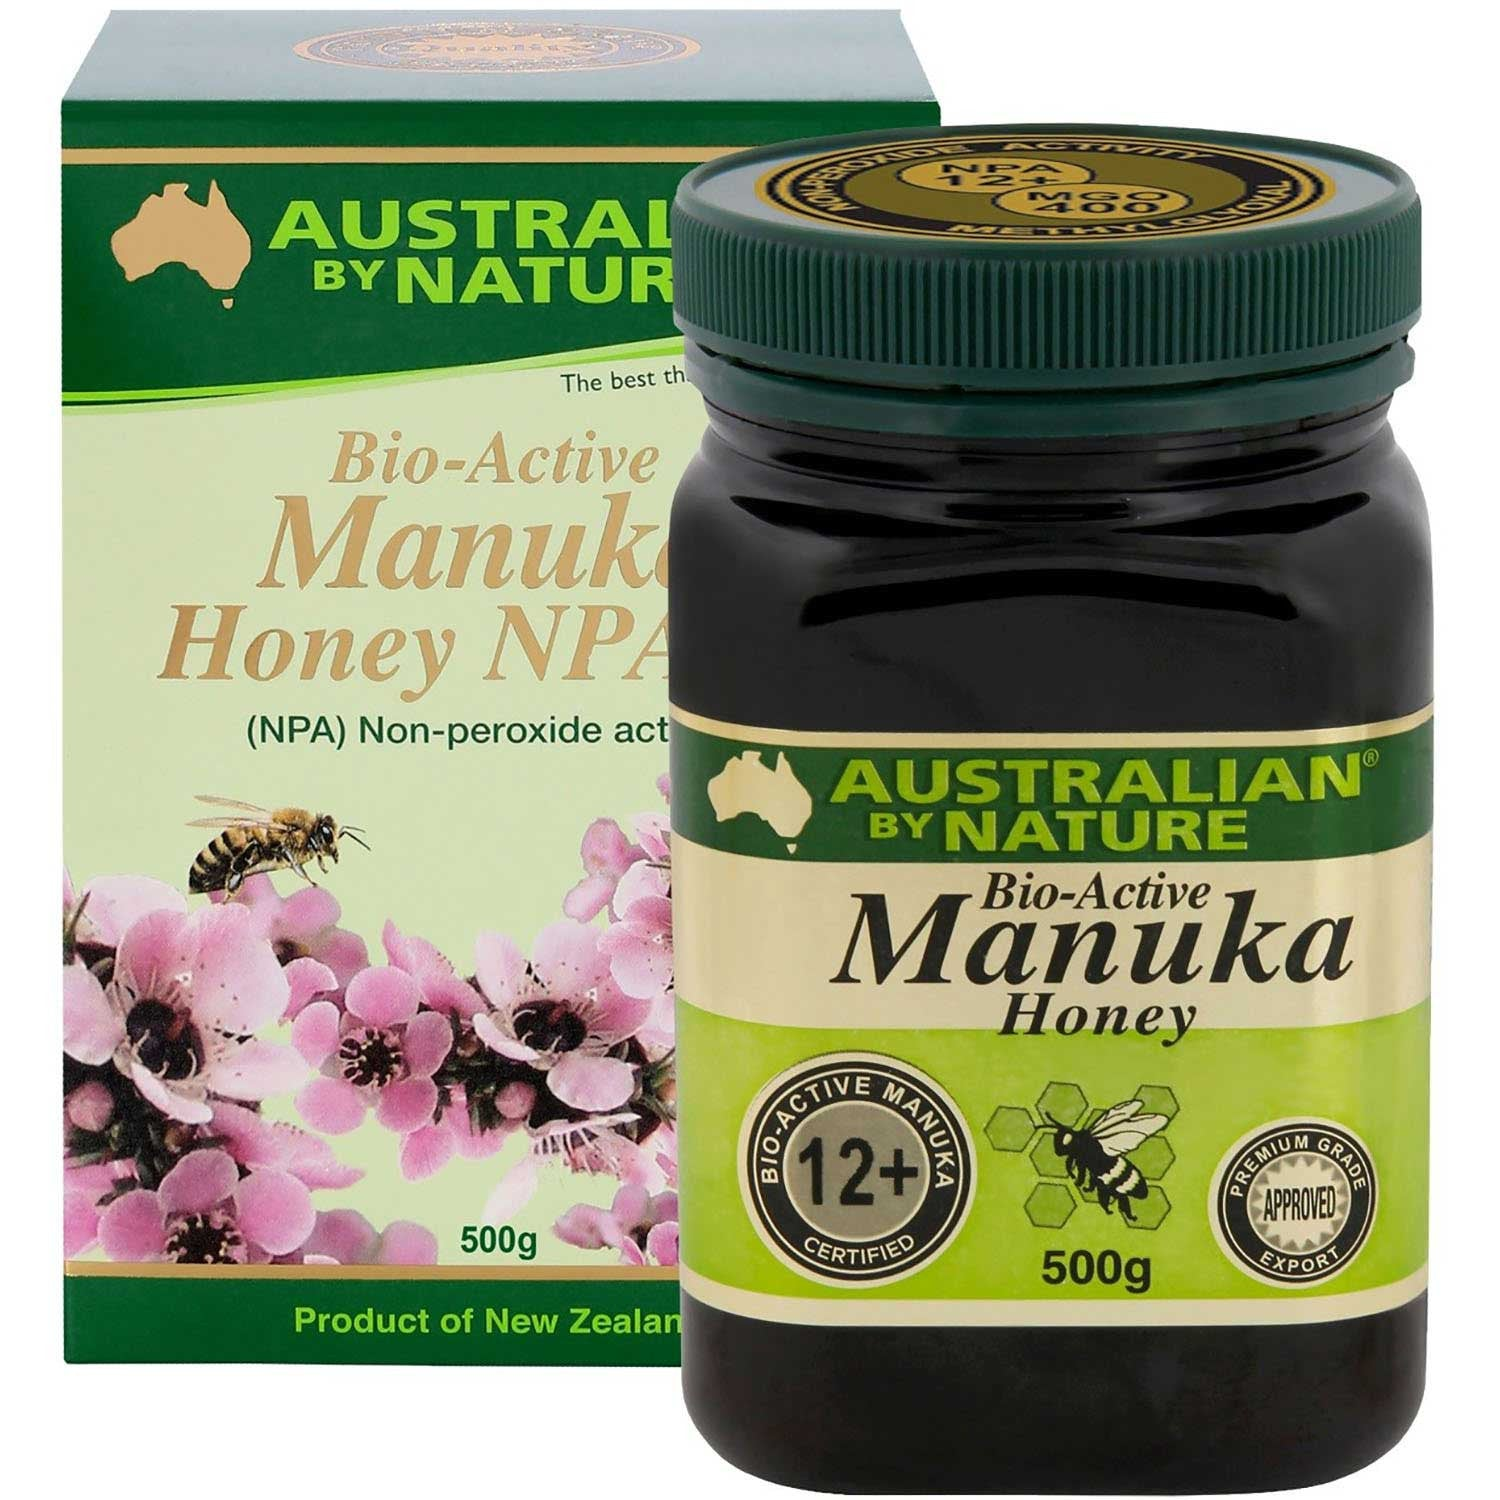 Australian By Nature Bio-Active Manuka Honey NPA 12+, 500 g.-NaturesWisdom